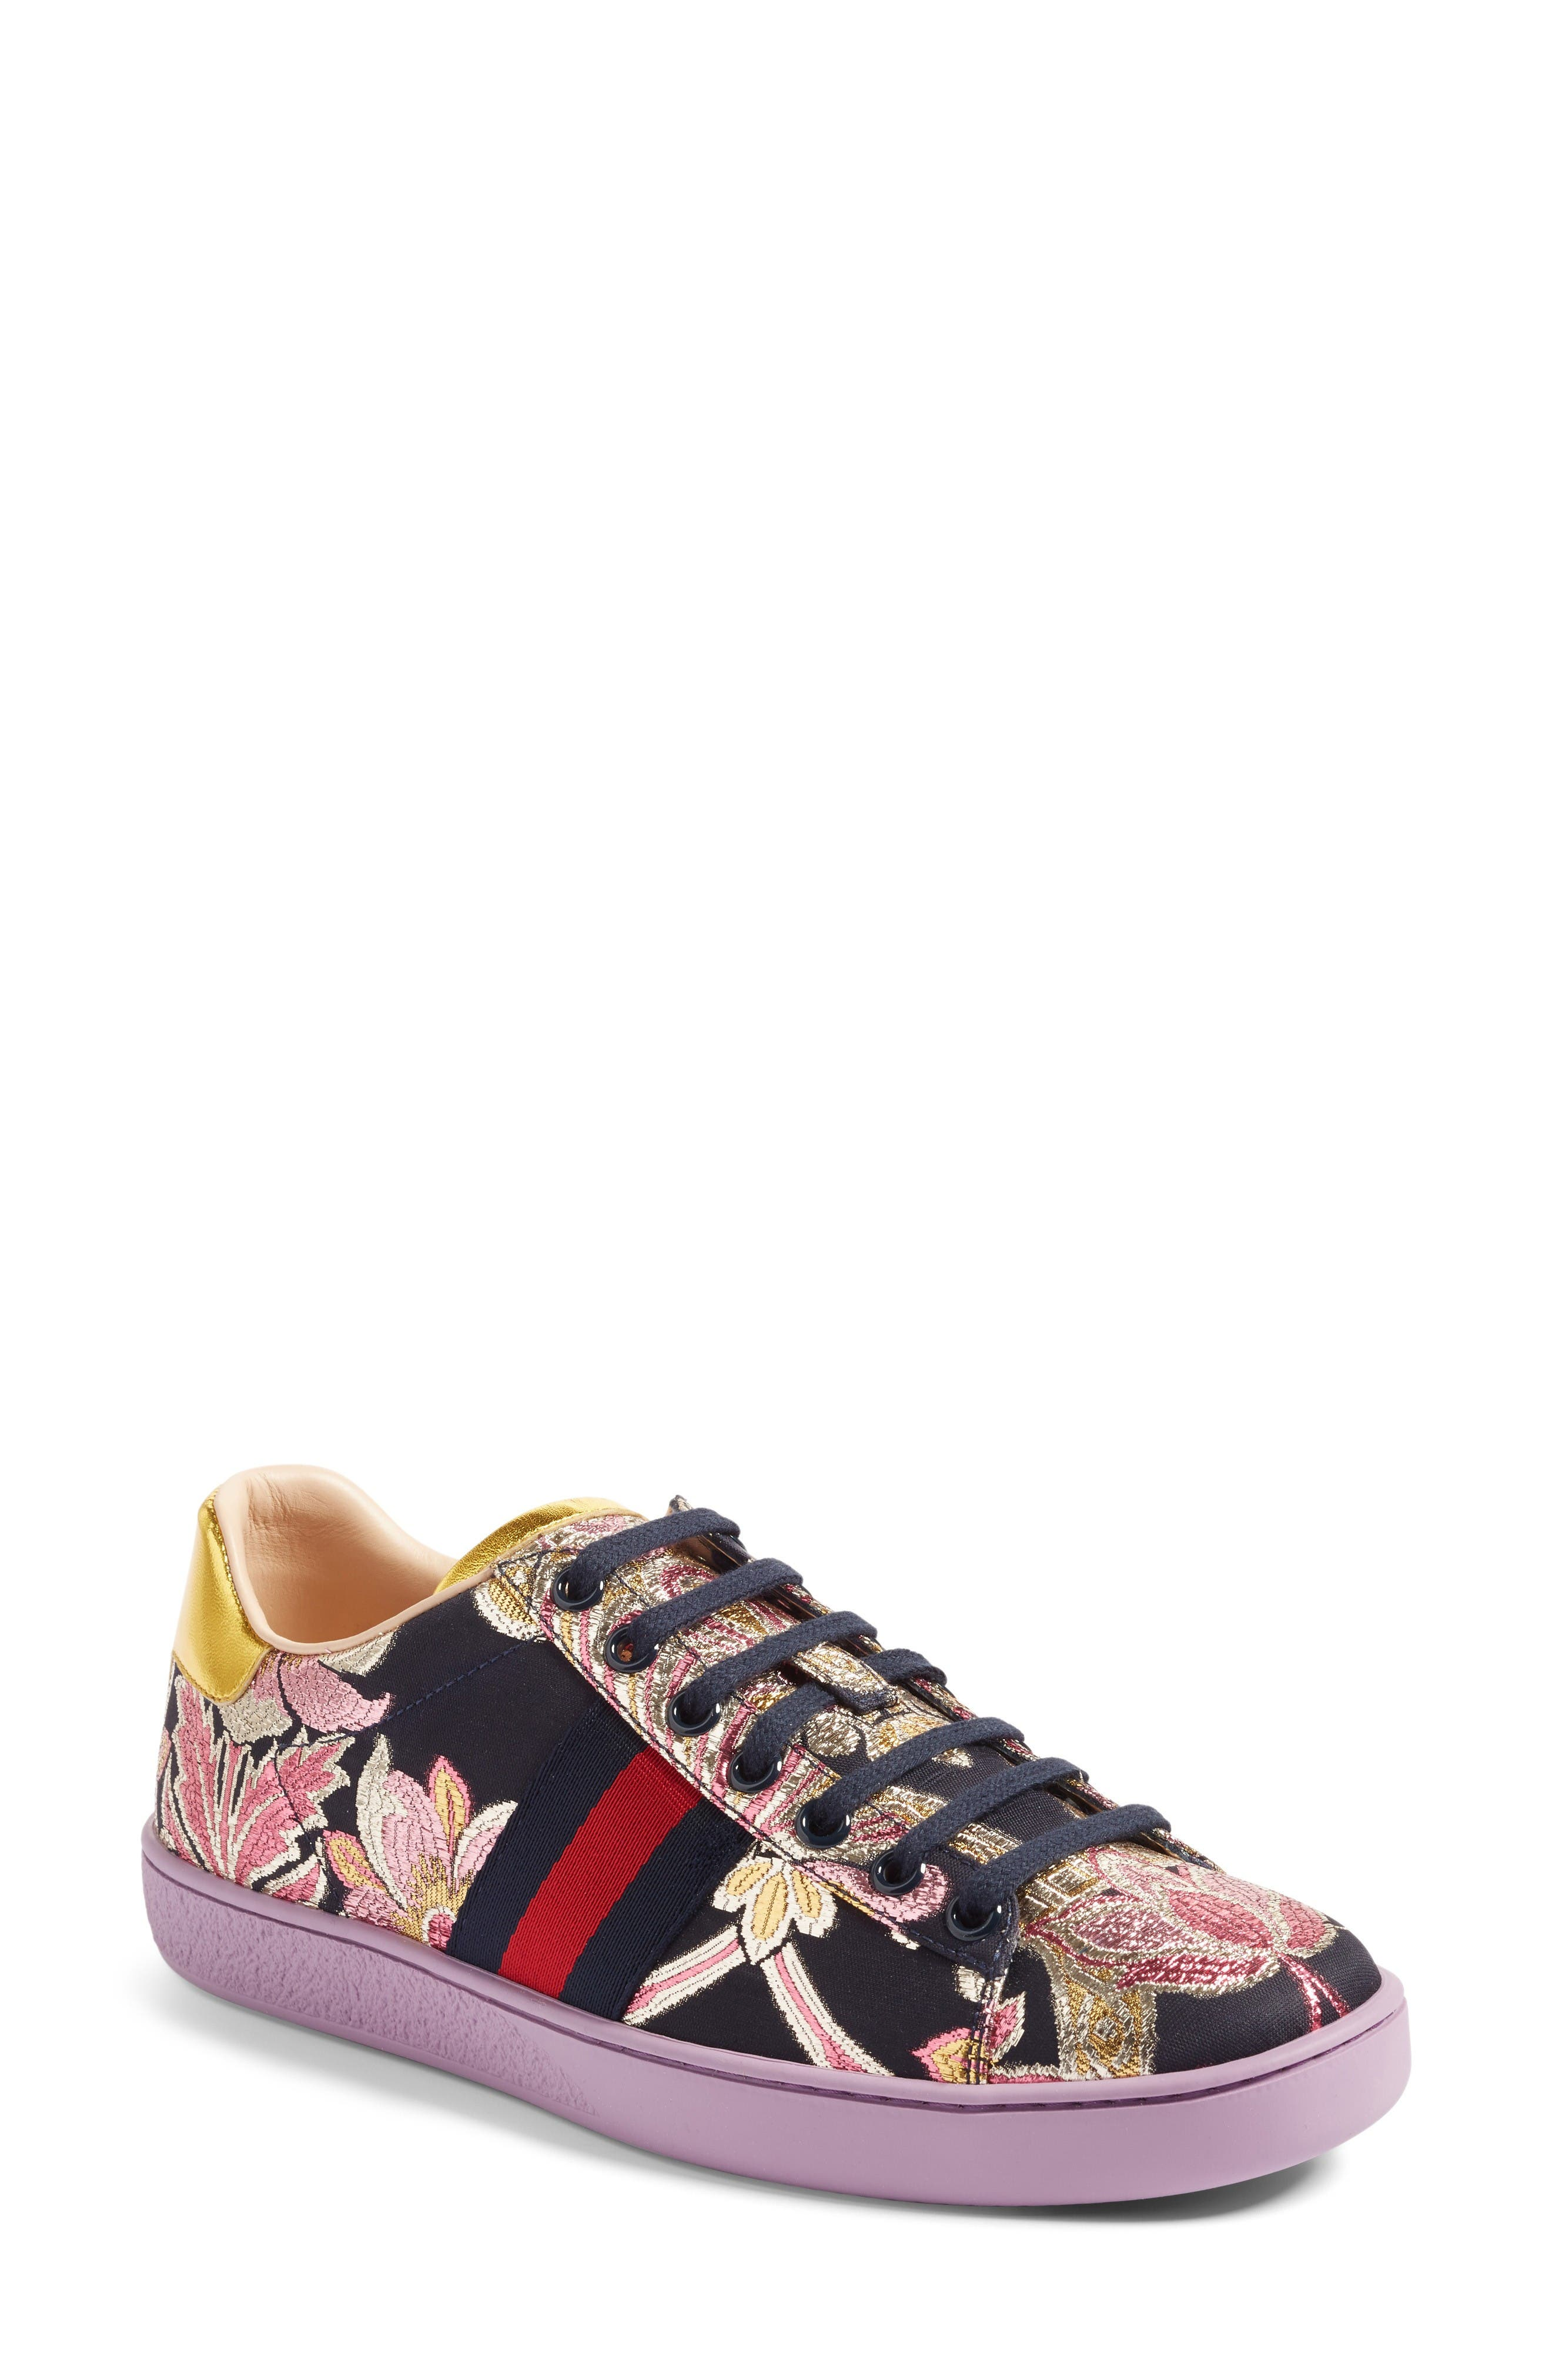 Main Image - Gucci New Ace Floral Sneaker (Women)